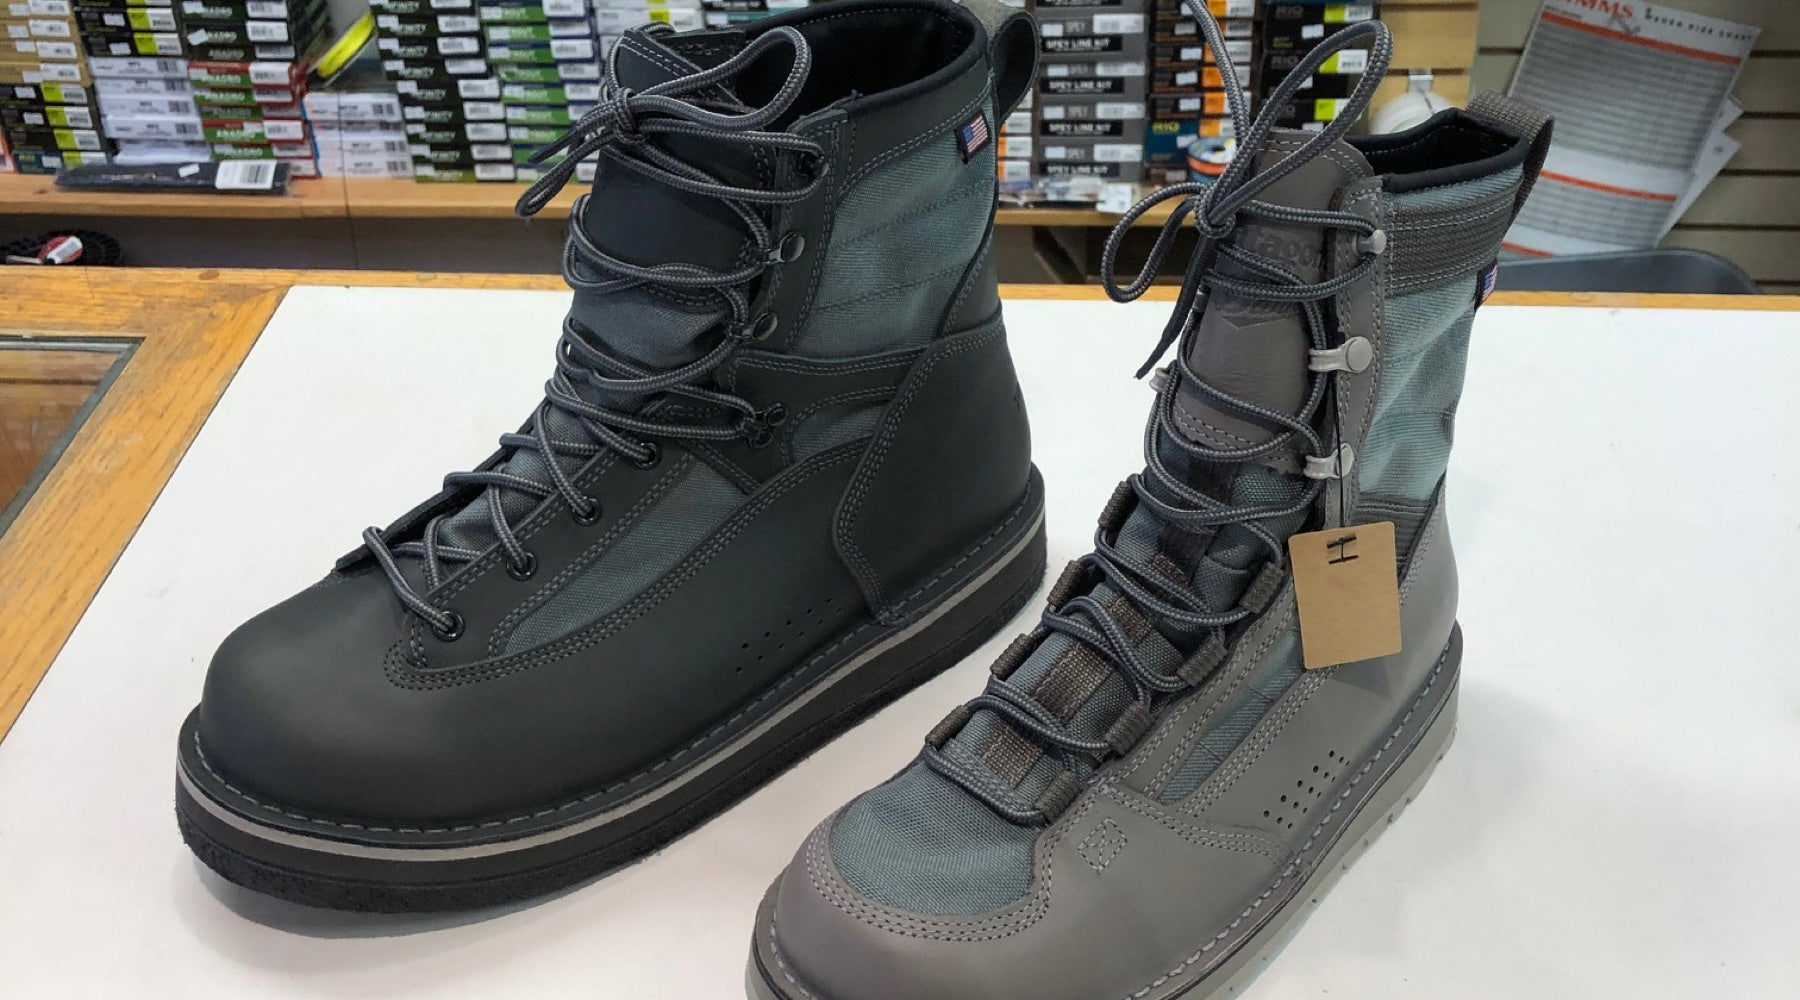 Patagonia Danner Wading Boot Review 1